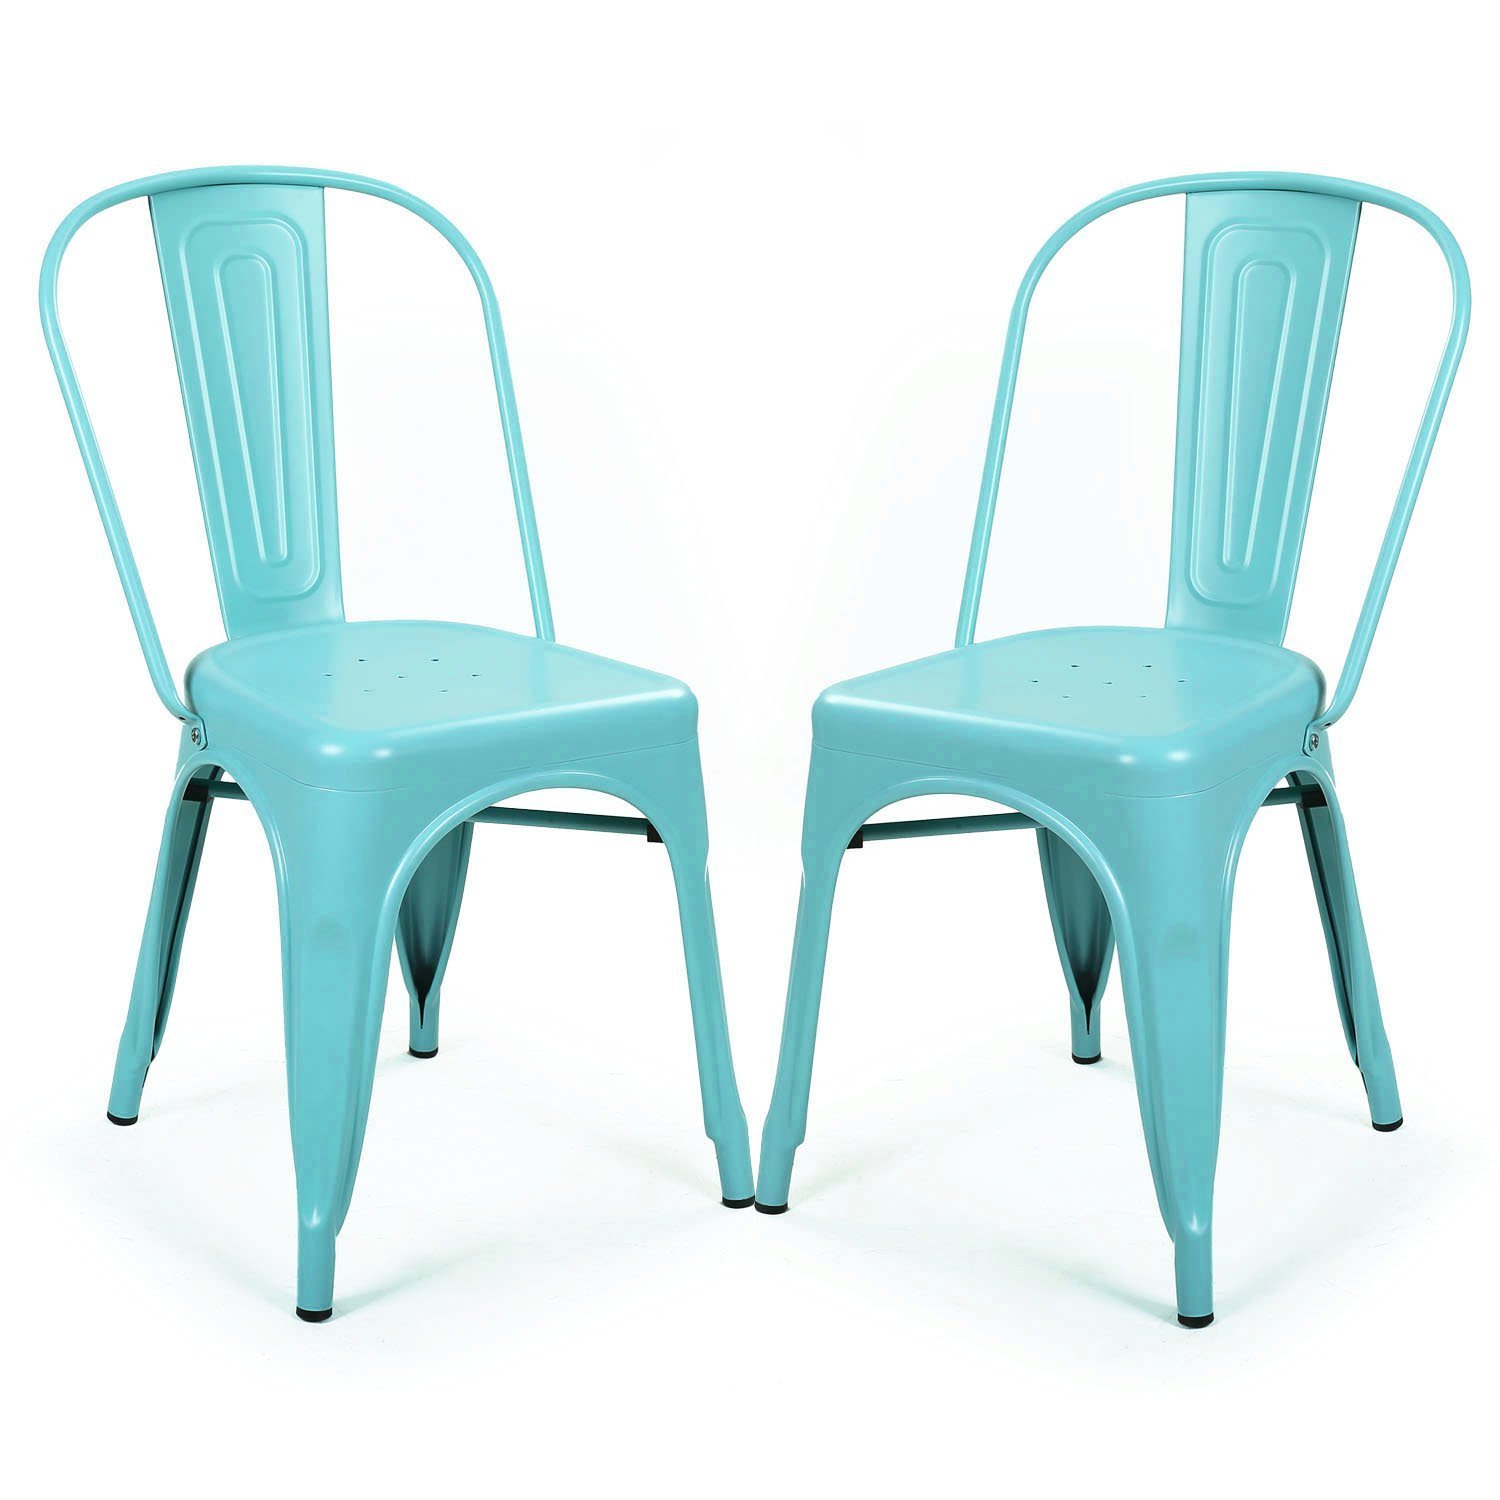 b ie UTF8&node kitchen chairs with arms Adeco Metal Stackable Industrial Chic Dining Bistro Cafe Side Chairs Blue Set of 2